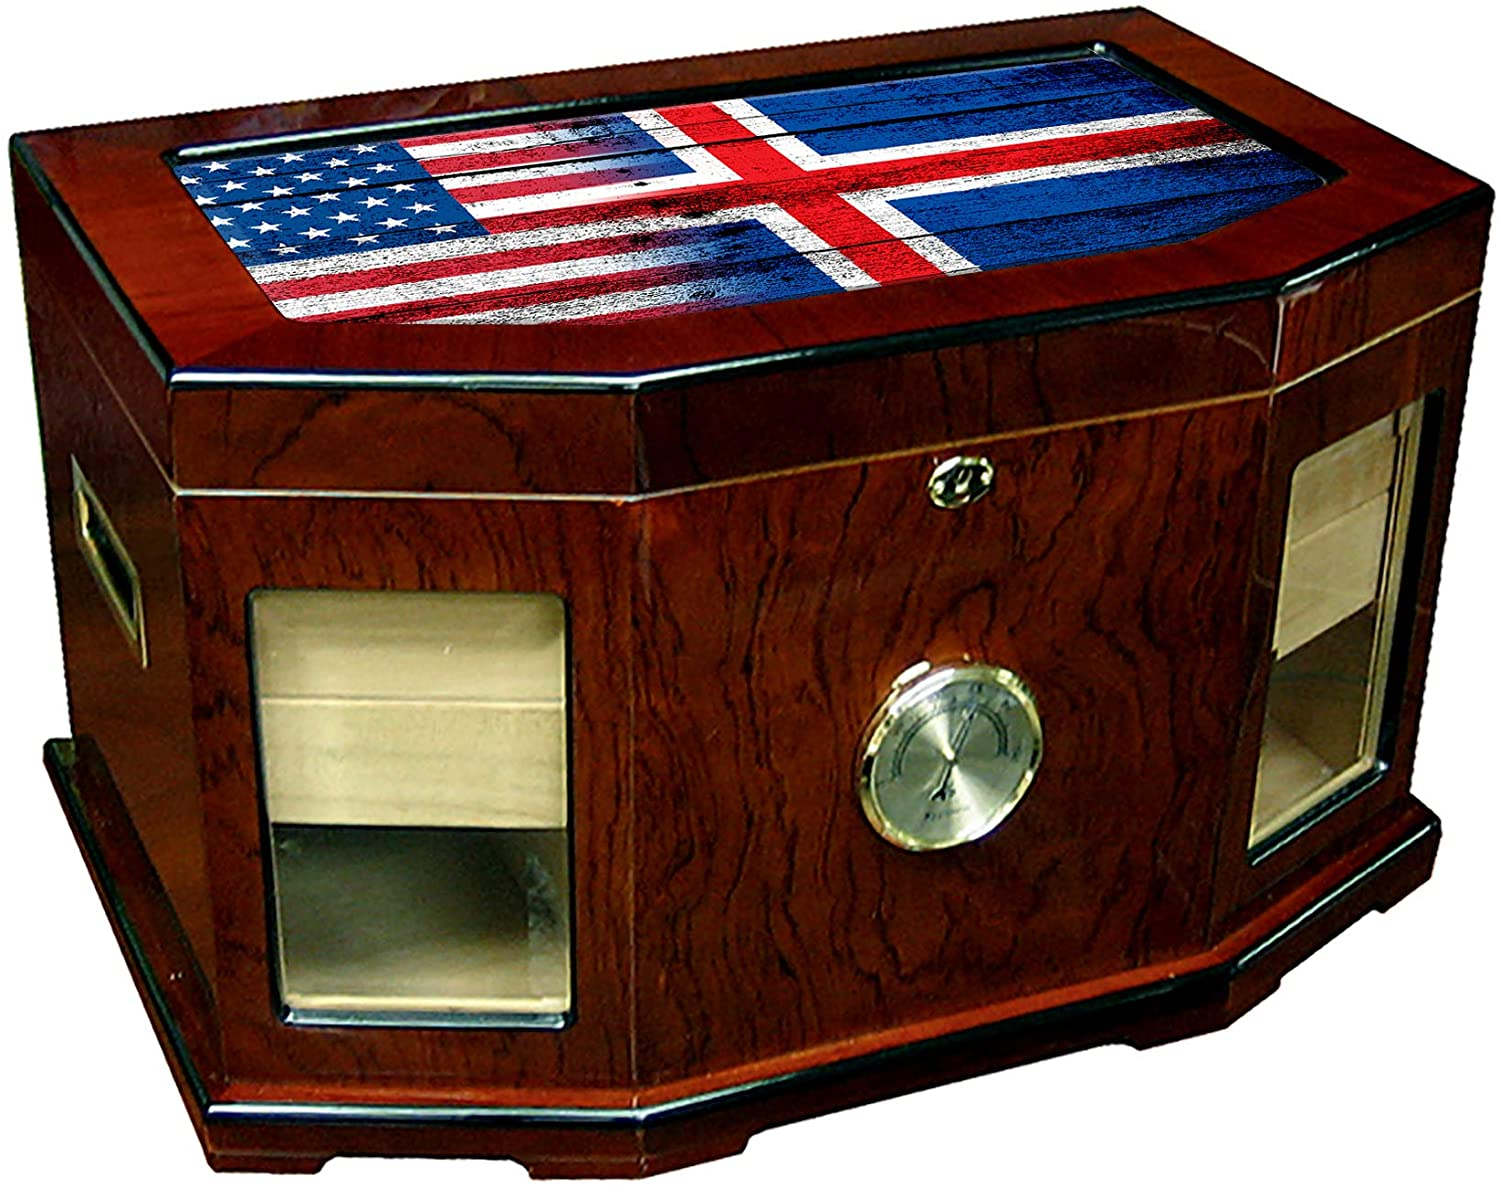 Large Premium Desktop Humidor - Glass Top - Flag of Iceland (Icelander) - Wood with USA Flag - 300 Cigar Capacity - Cedar Lined with Two humidifiers & Large Front Mounted Hygrometer.